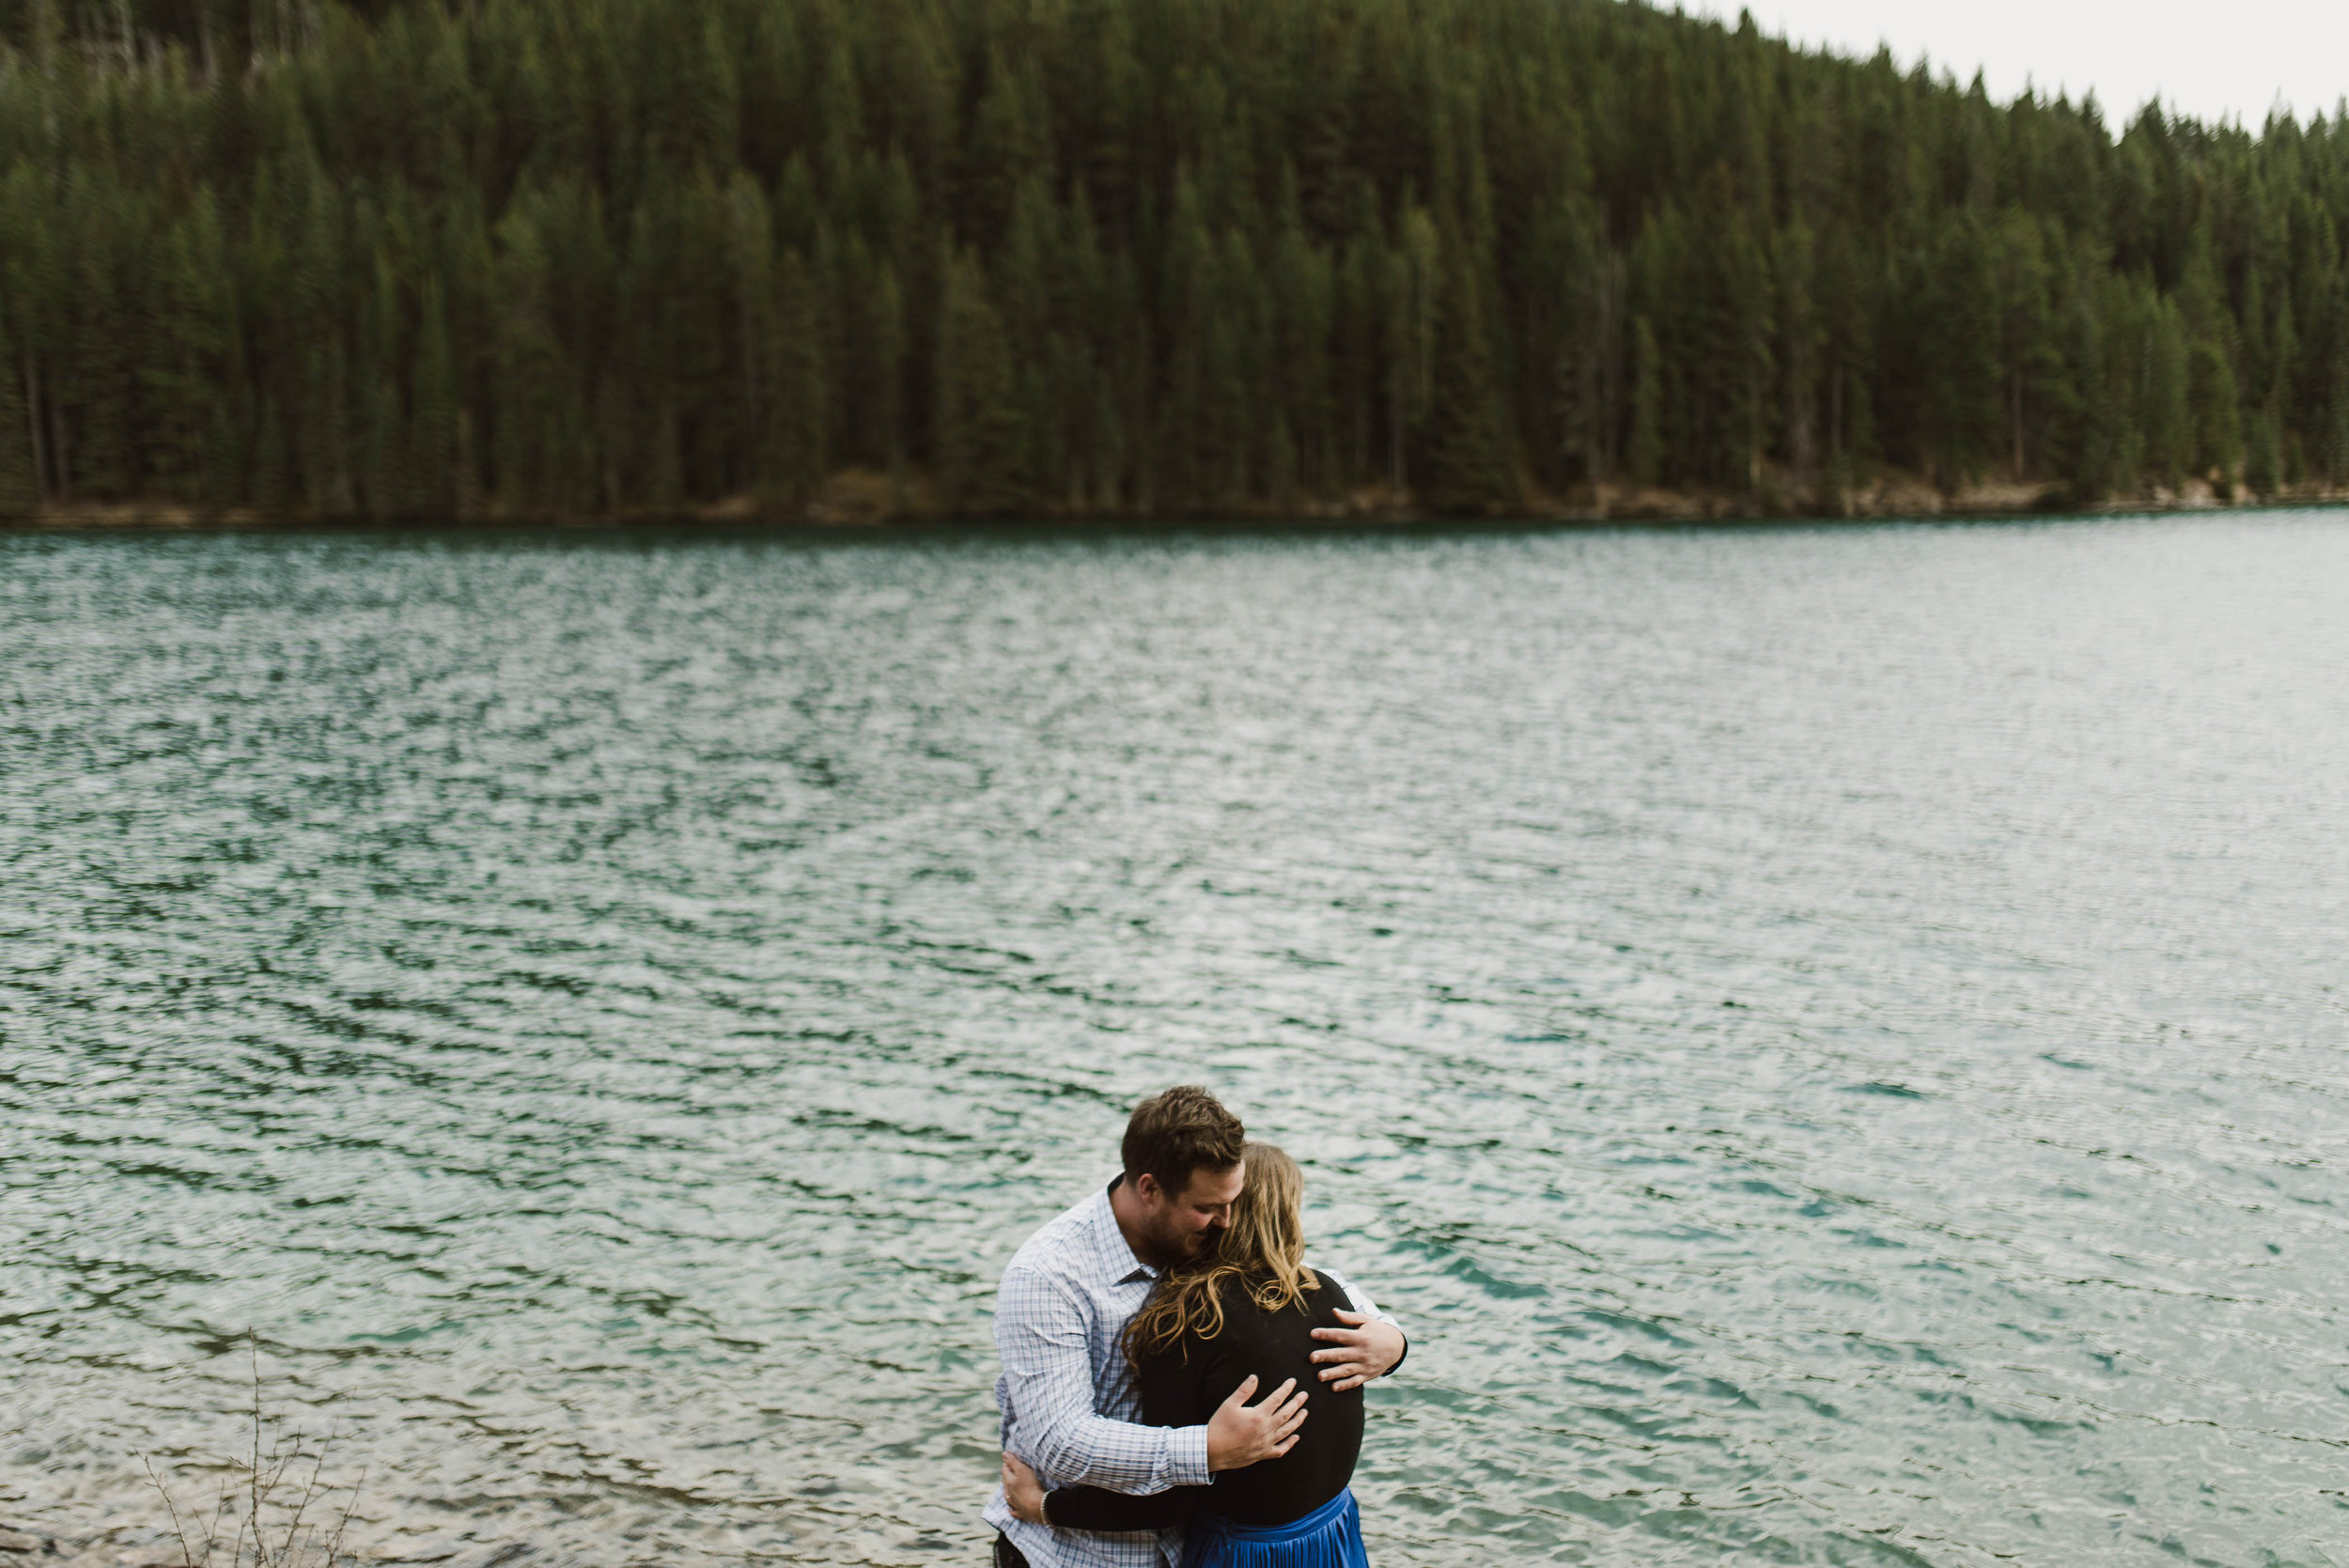 Isaiah-&-Taylor-Photography---Matt-&-Lindsay-Engagement-114.jpg